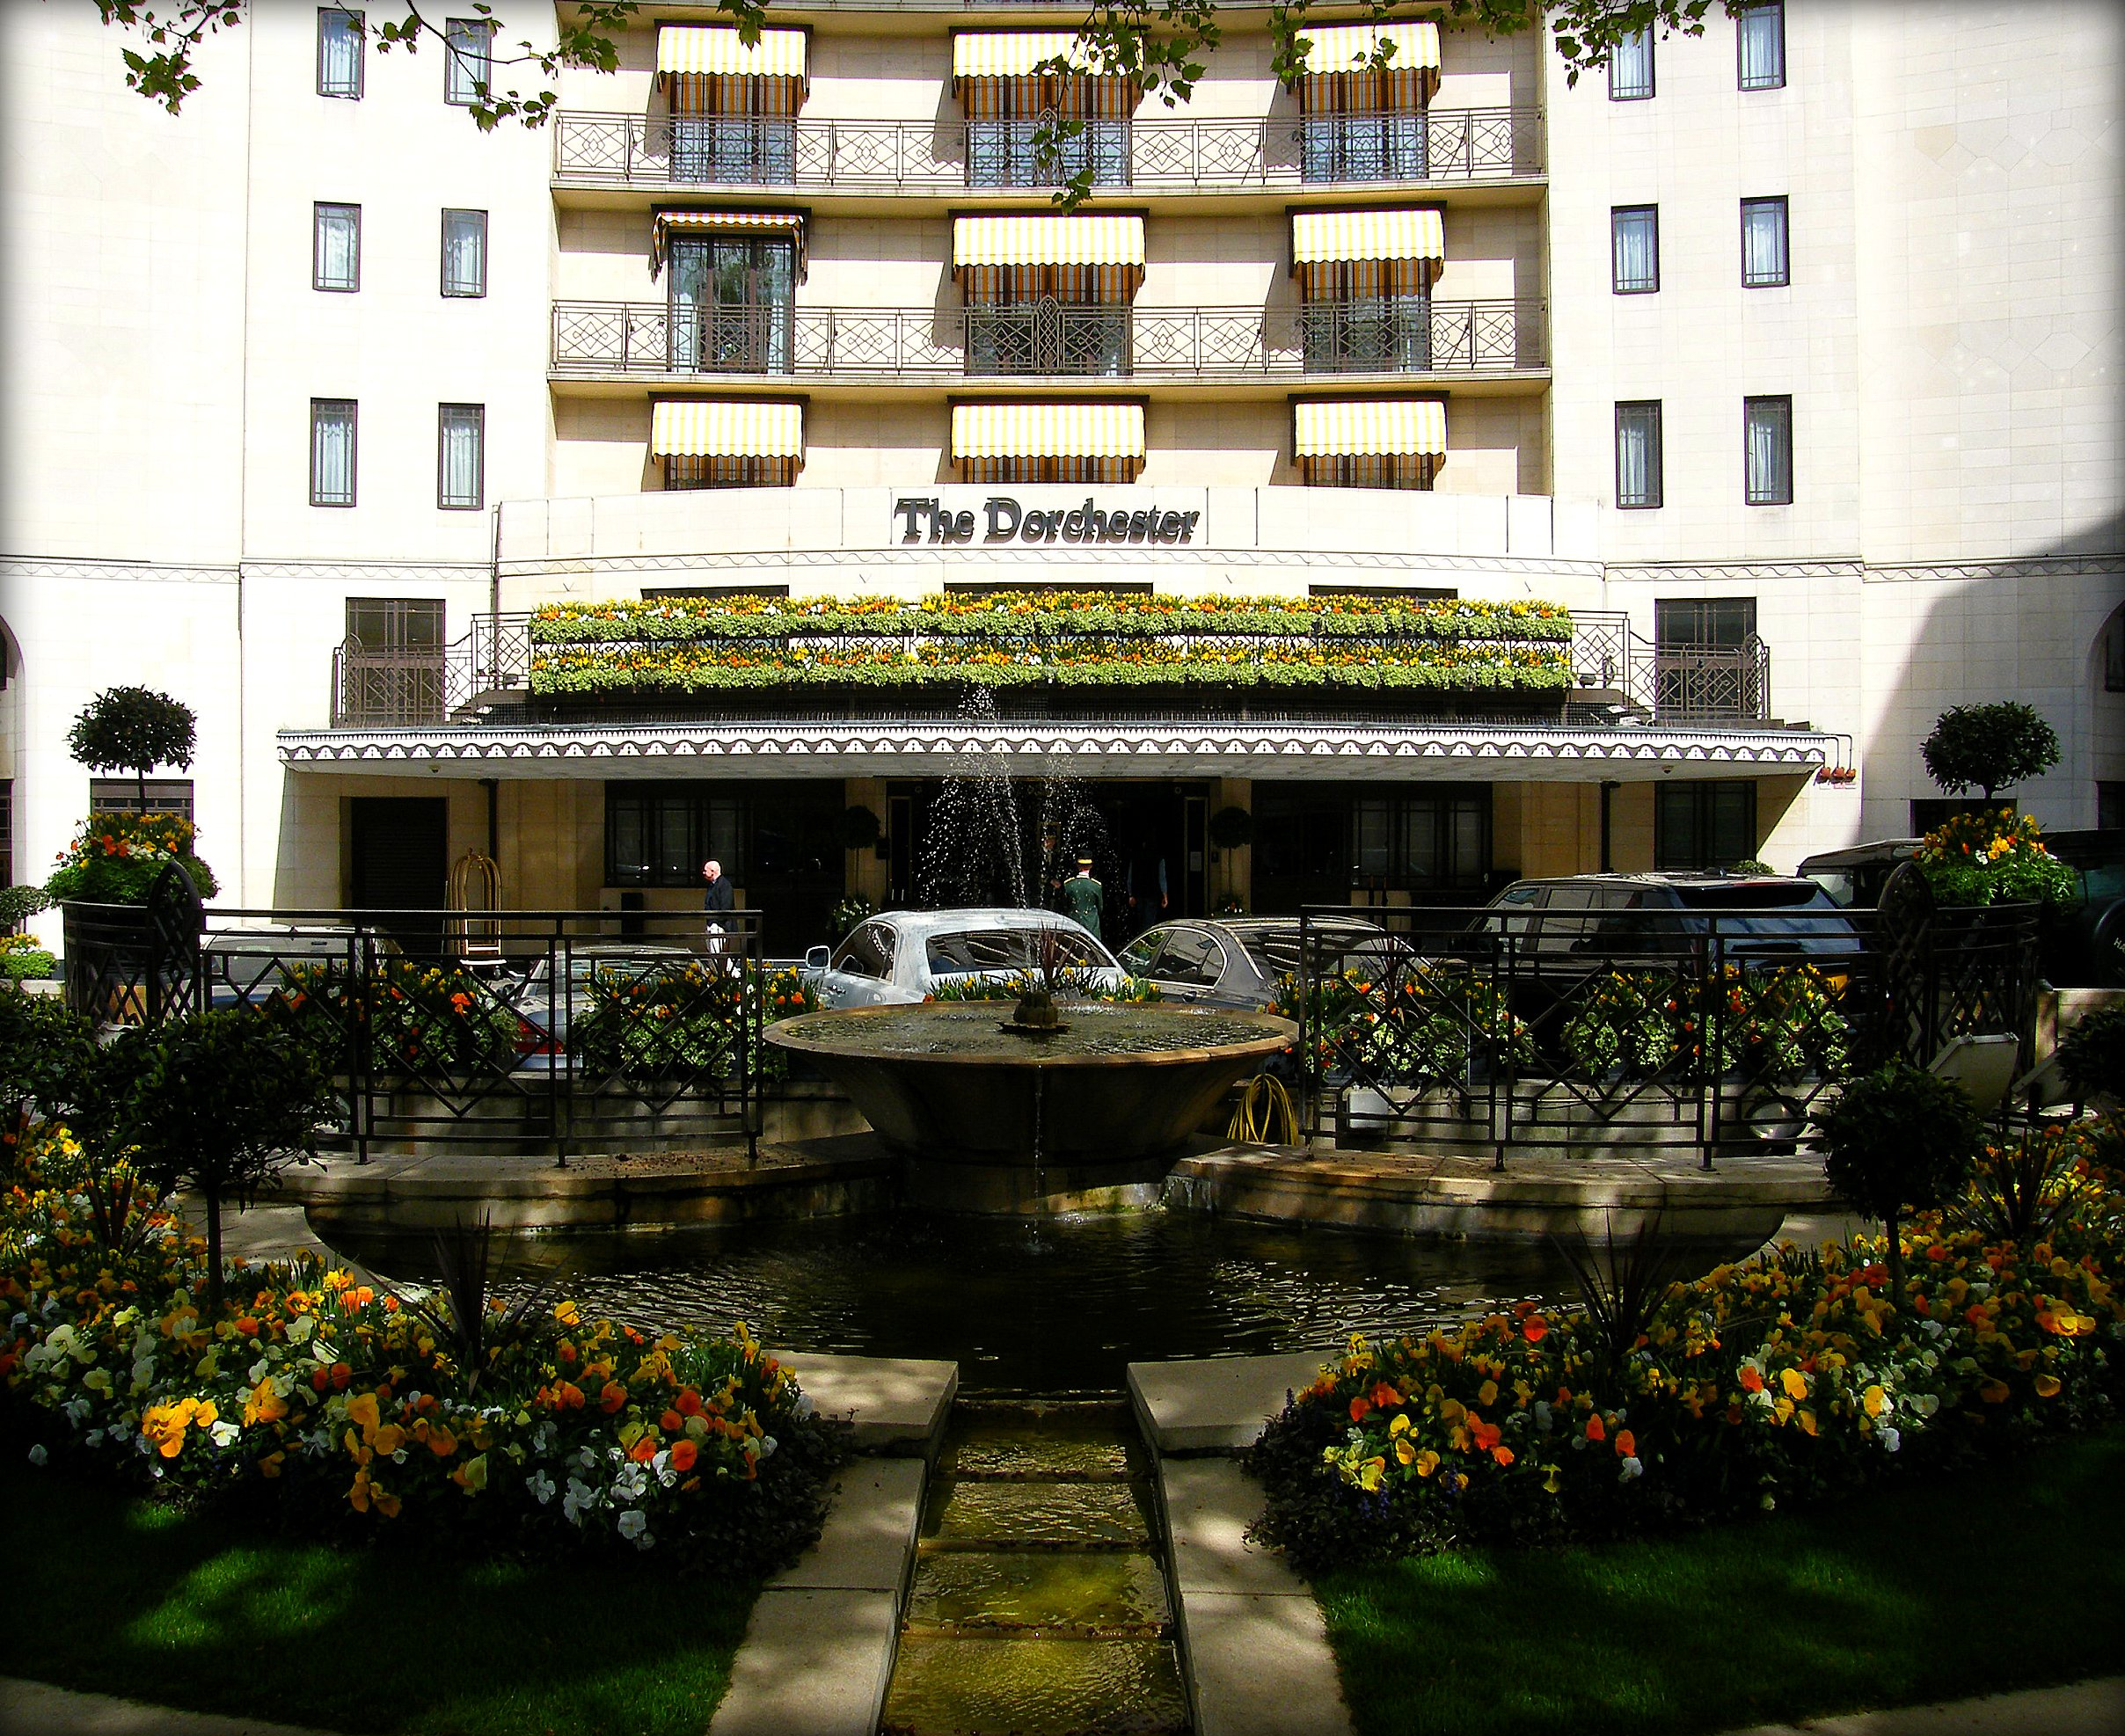 The_Dorchester_Hotel_in_London_Mayfair,_England_United_Kingdom_(4579989922).jpg